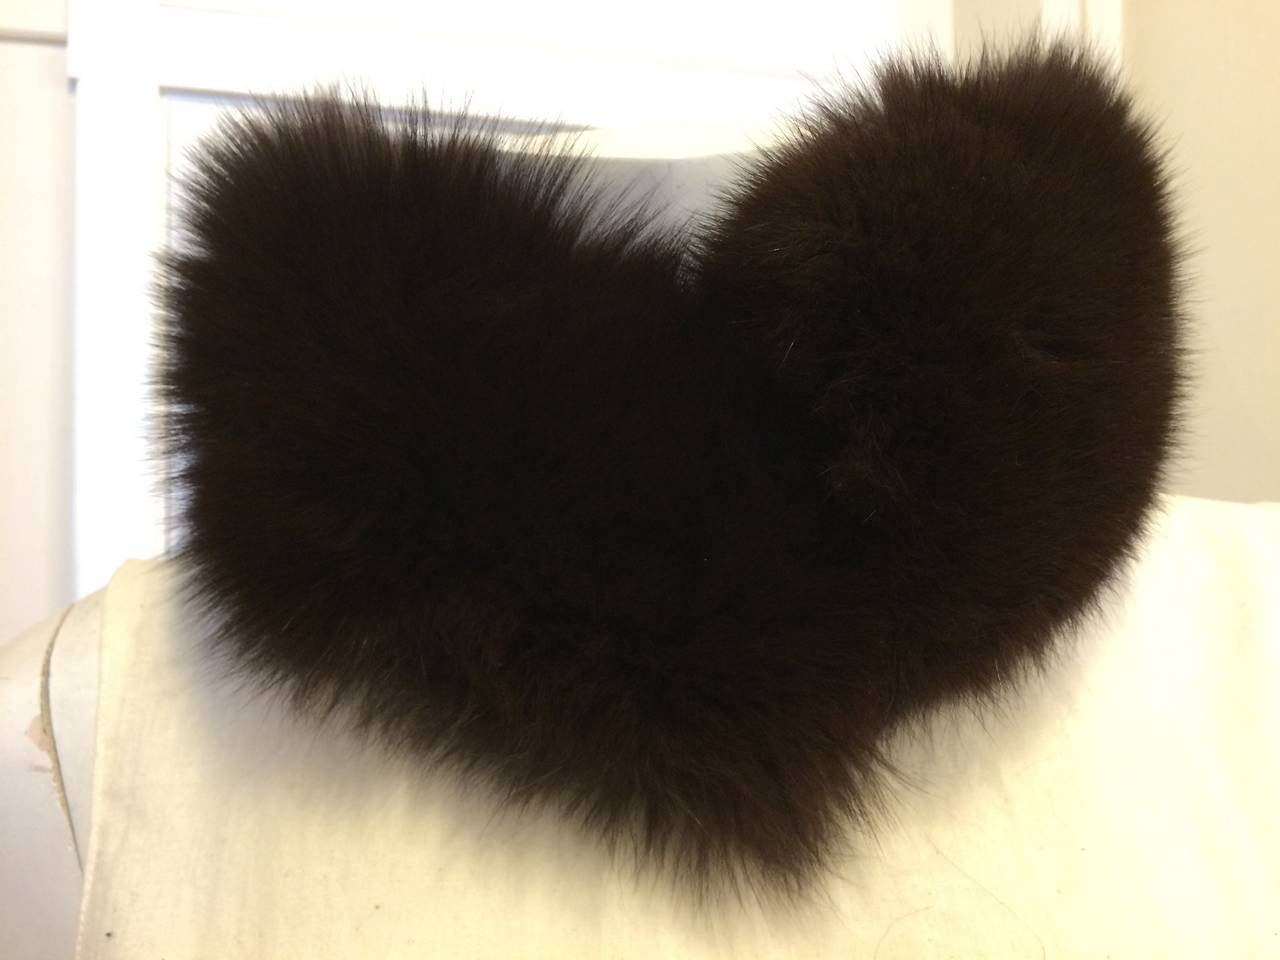 No matter what you're wearing, a deep brown fox fur neck piece adds a luxurious touch. This one by Prada is ultra silky and cozy, yet at the same time glamorous and chic. Wear with a heavy knit sweater and jeans for a more casual look or instead of